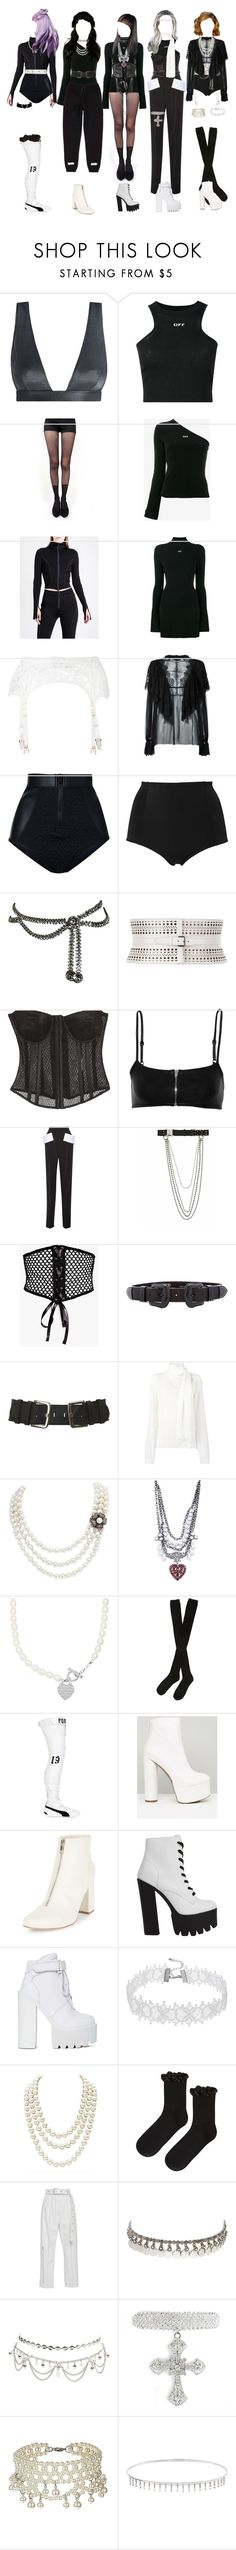 """""""[ live ] G-1 _ E.A.T."""" by xxzodiacentertainmentxx ❤ liked on Polyvore featuring Zimmermann, Off-White, Pretty Polly, Dolce&Gabbana, Duskii, Monki, Christian Dior, Alaïa, Tom Ford and T By Alexander Wang"""